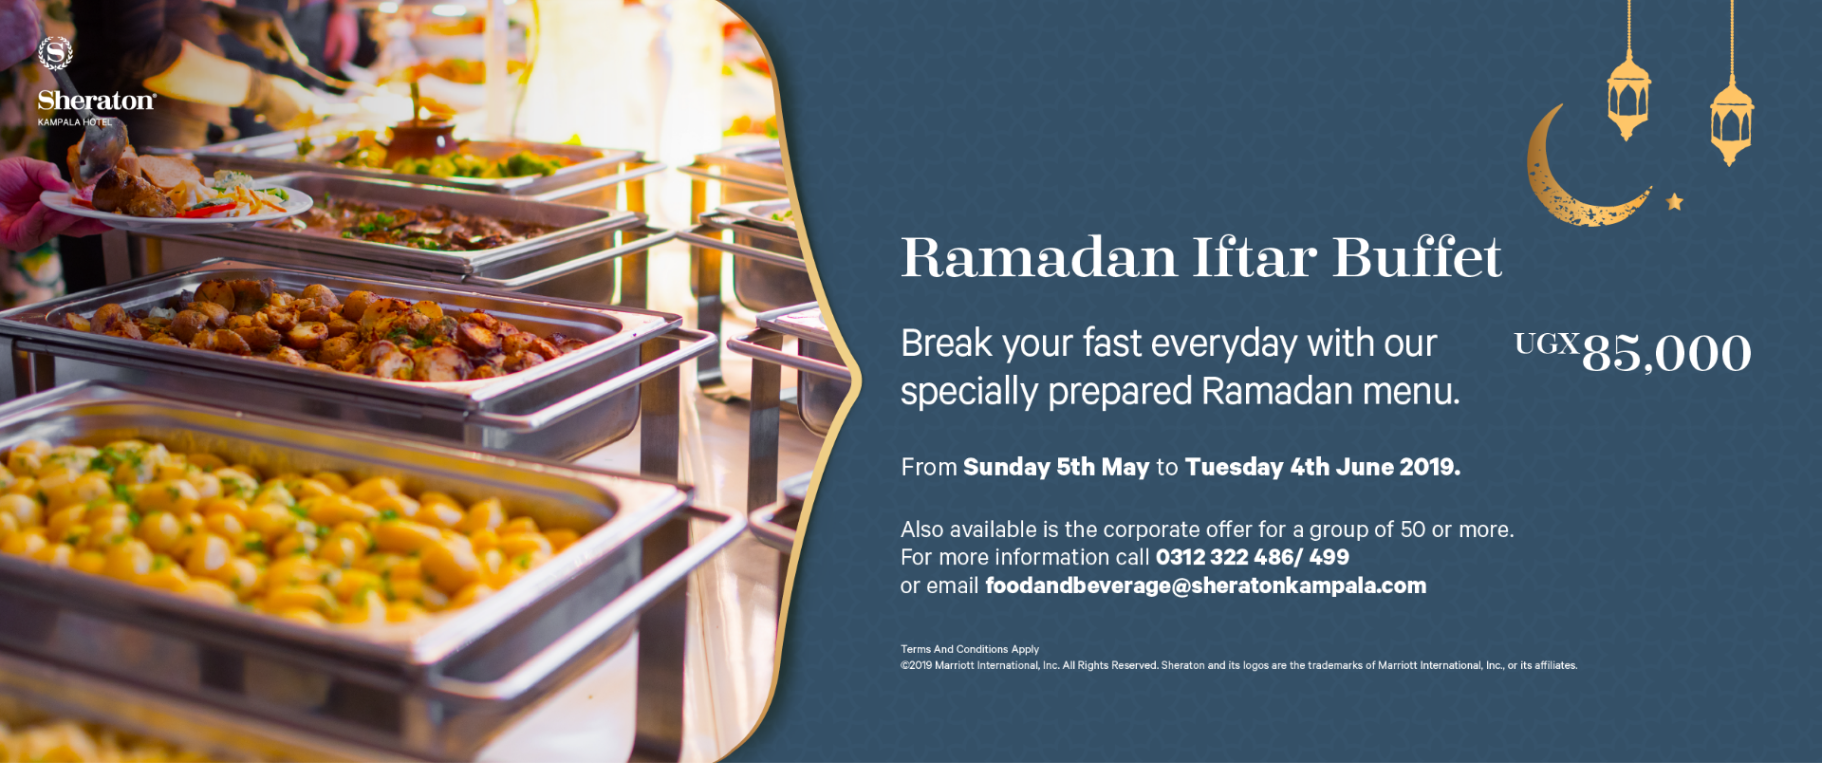 Enjoy secure and free parking when visiting the Kampala Sheraton Hotel for your Iftar meal ...